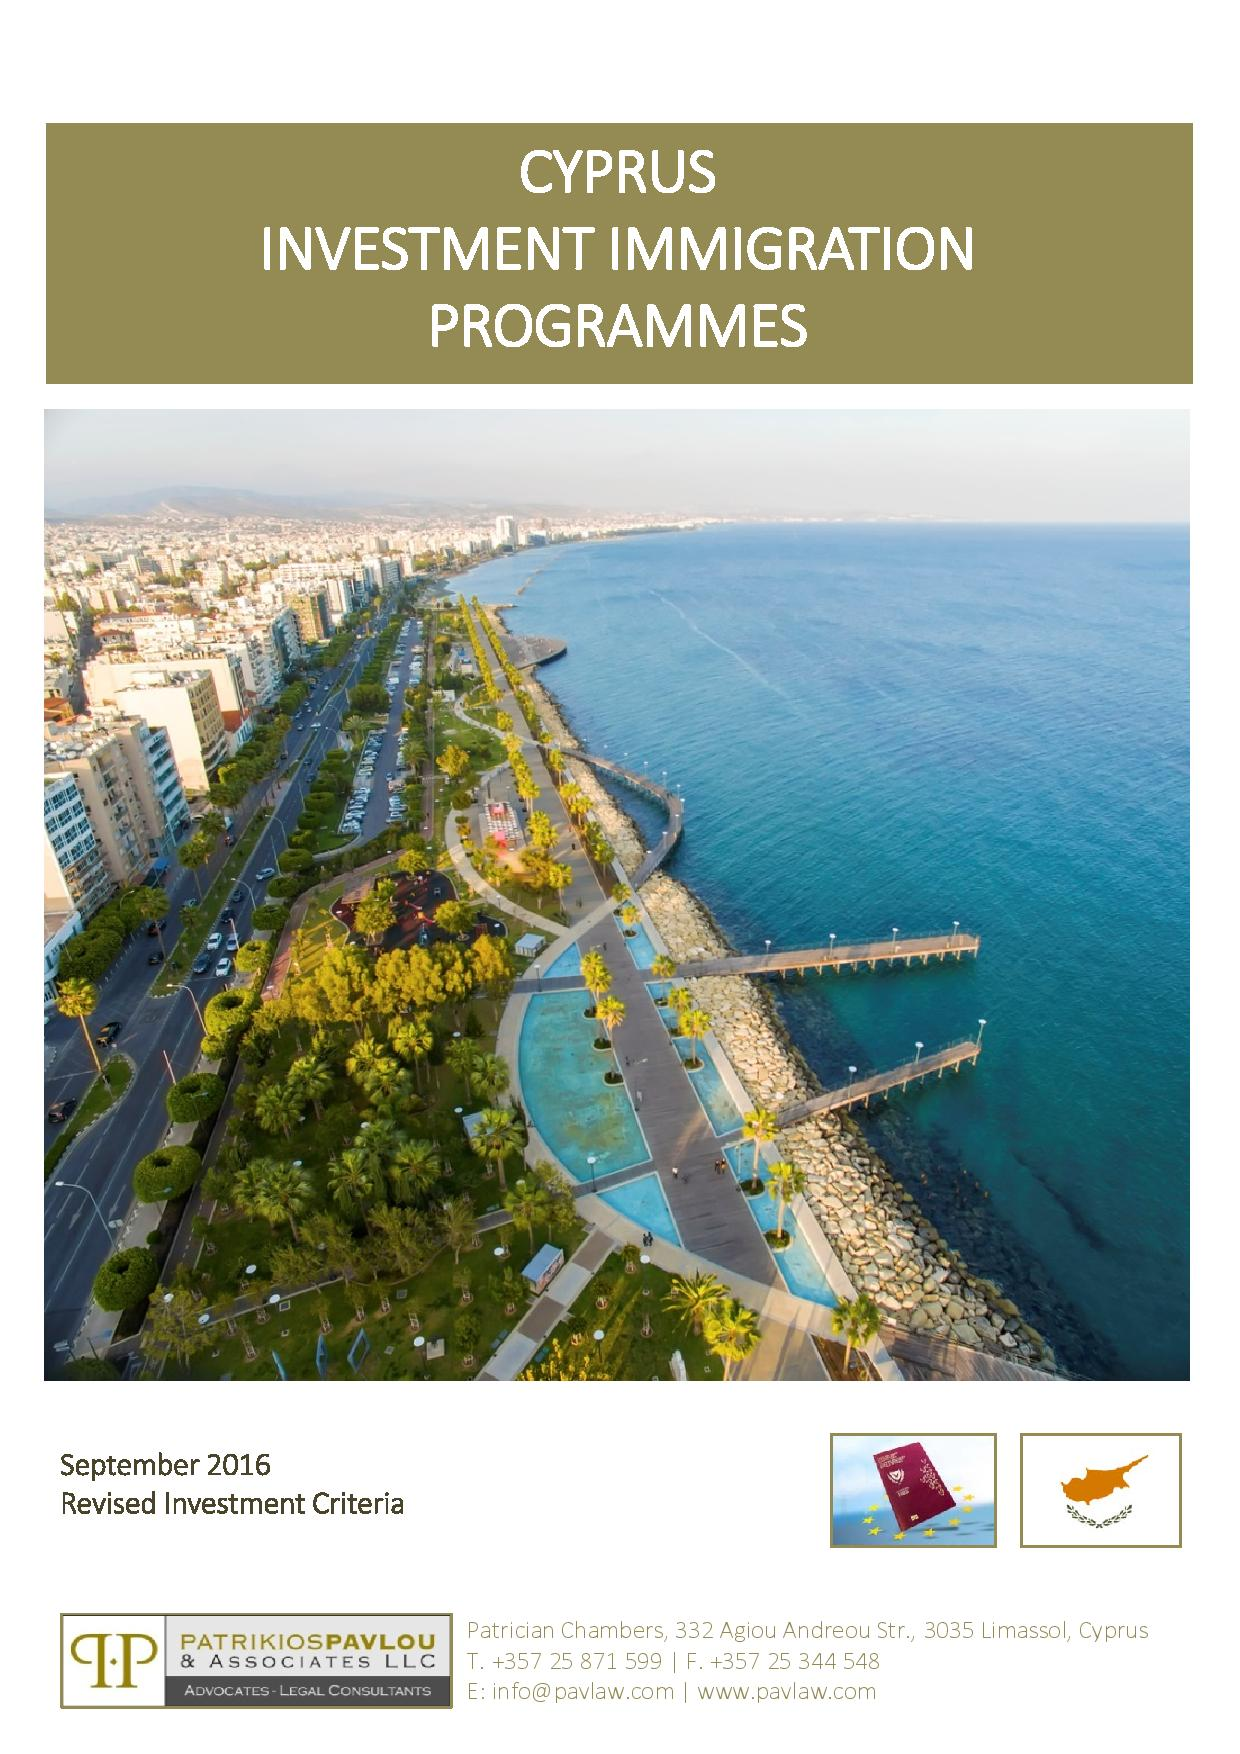 Cyprus Investment Immigration Programmes